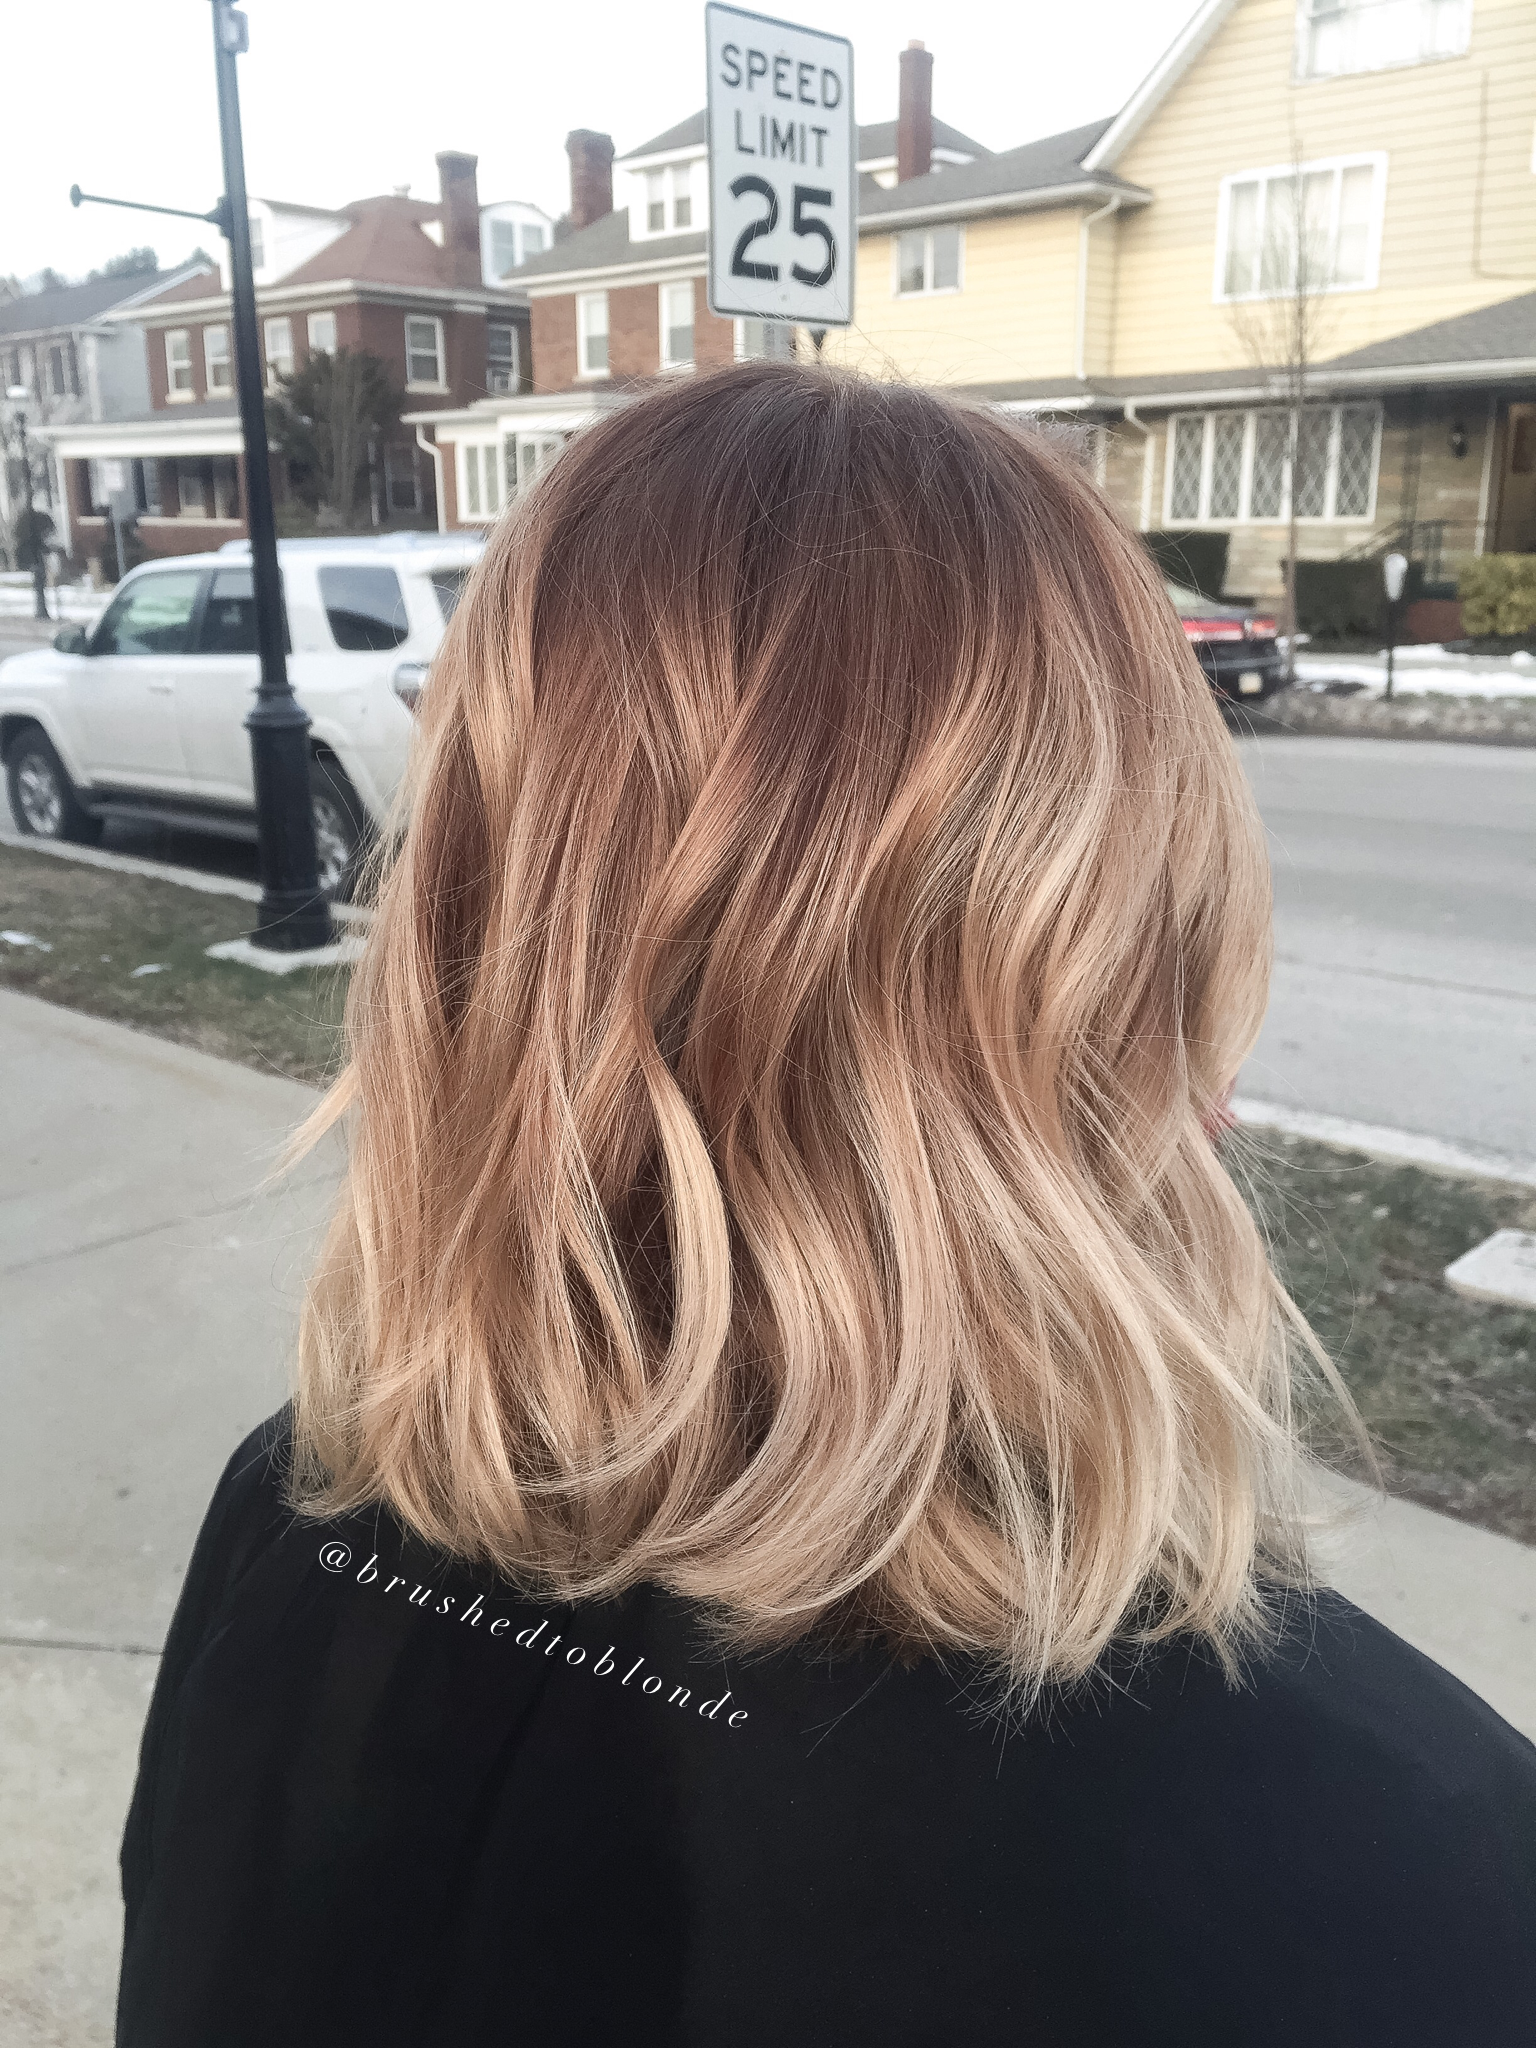 Honey blonde balayage over a warm copper brown base by Danielle Hess